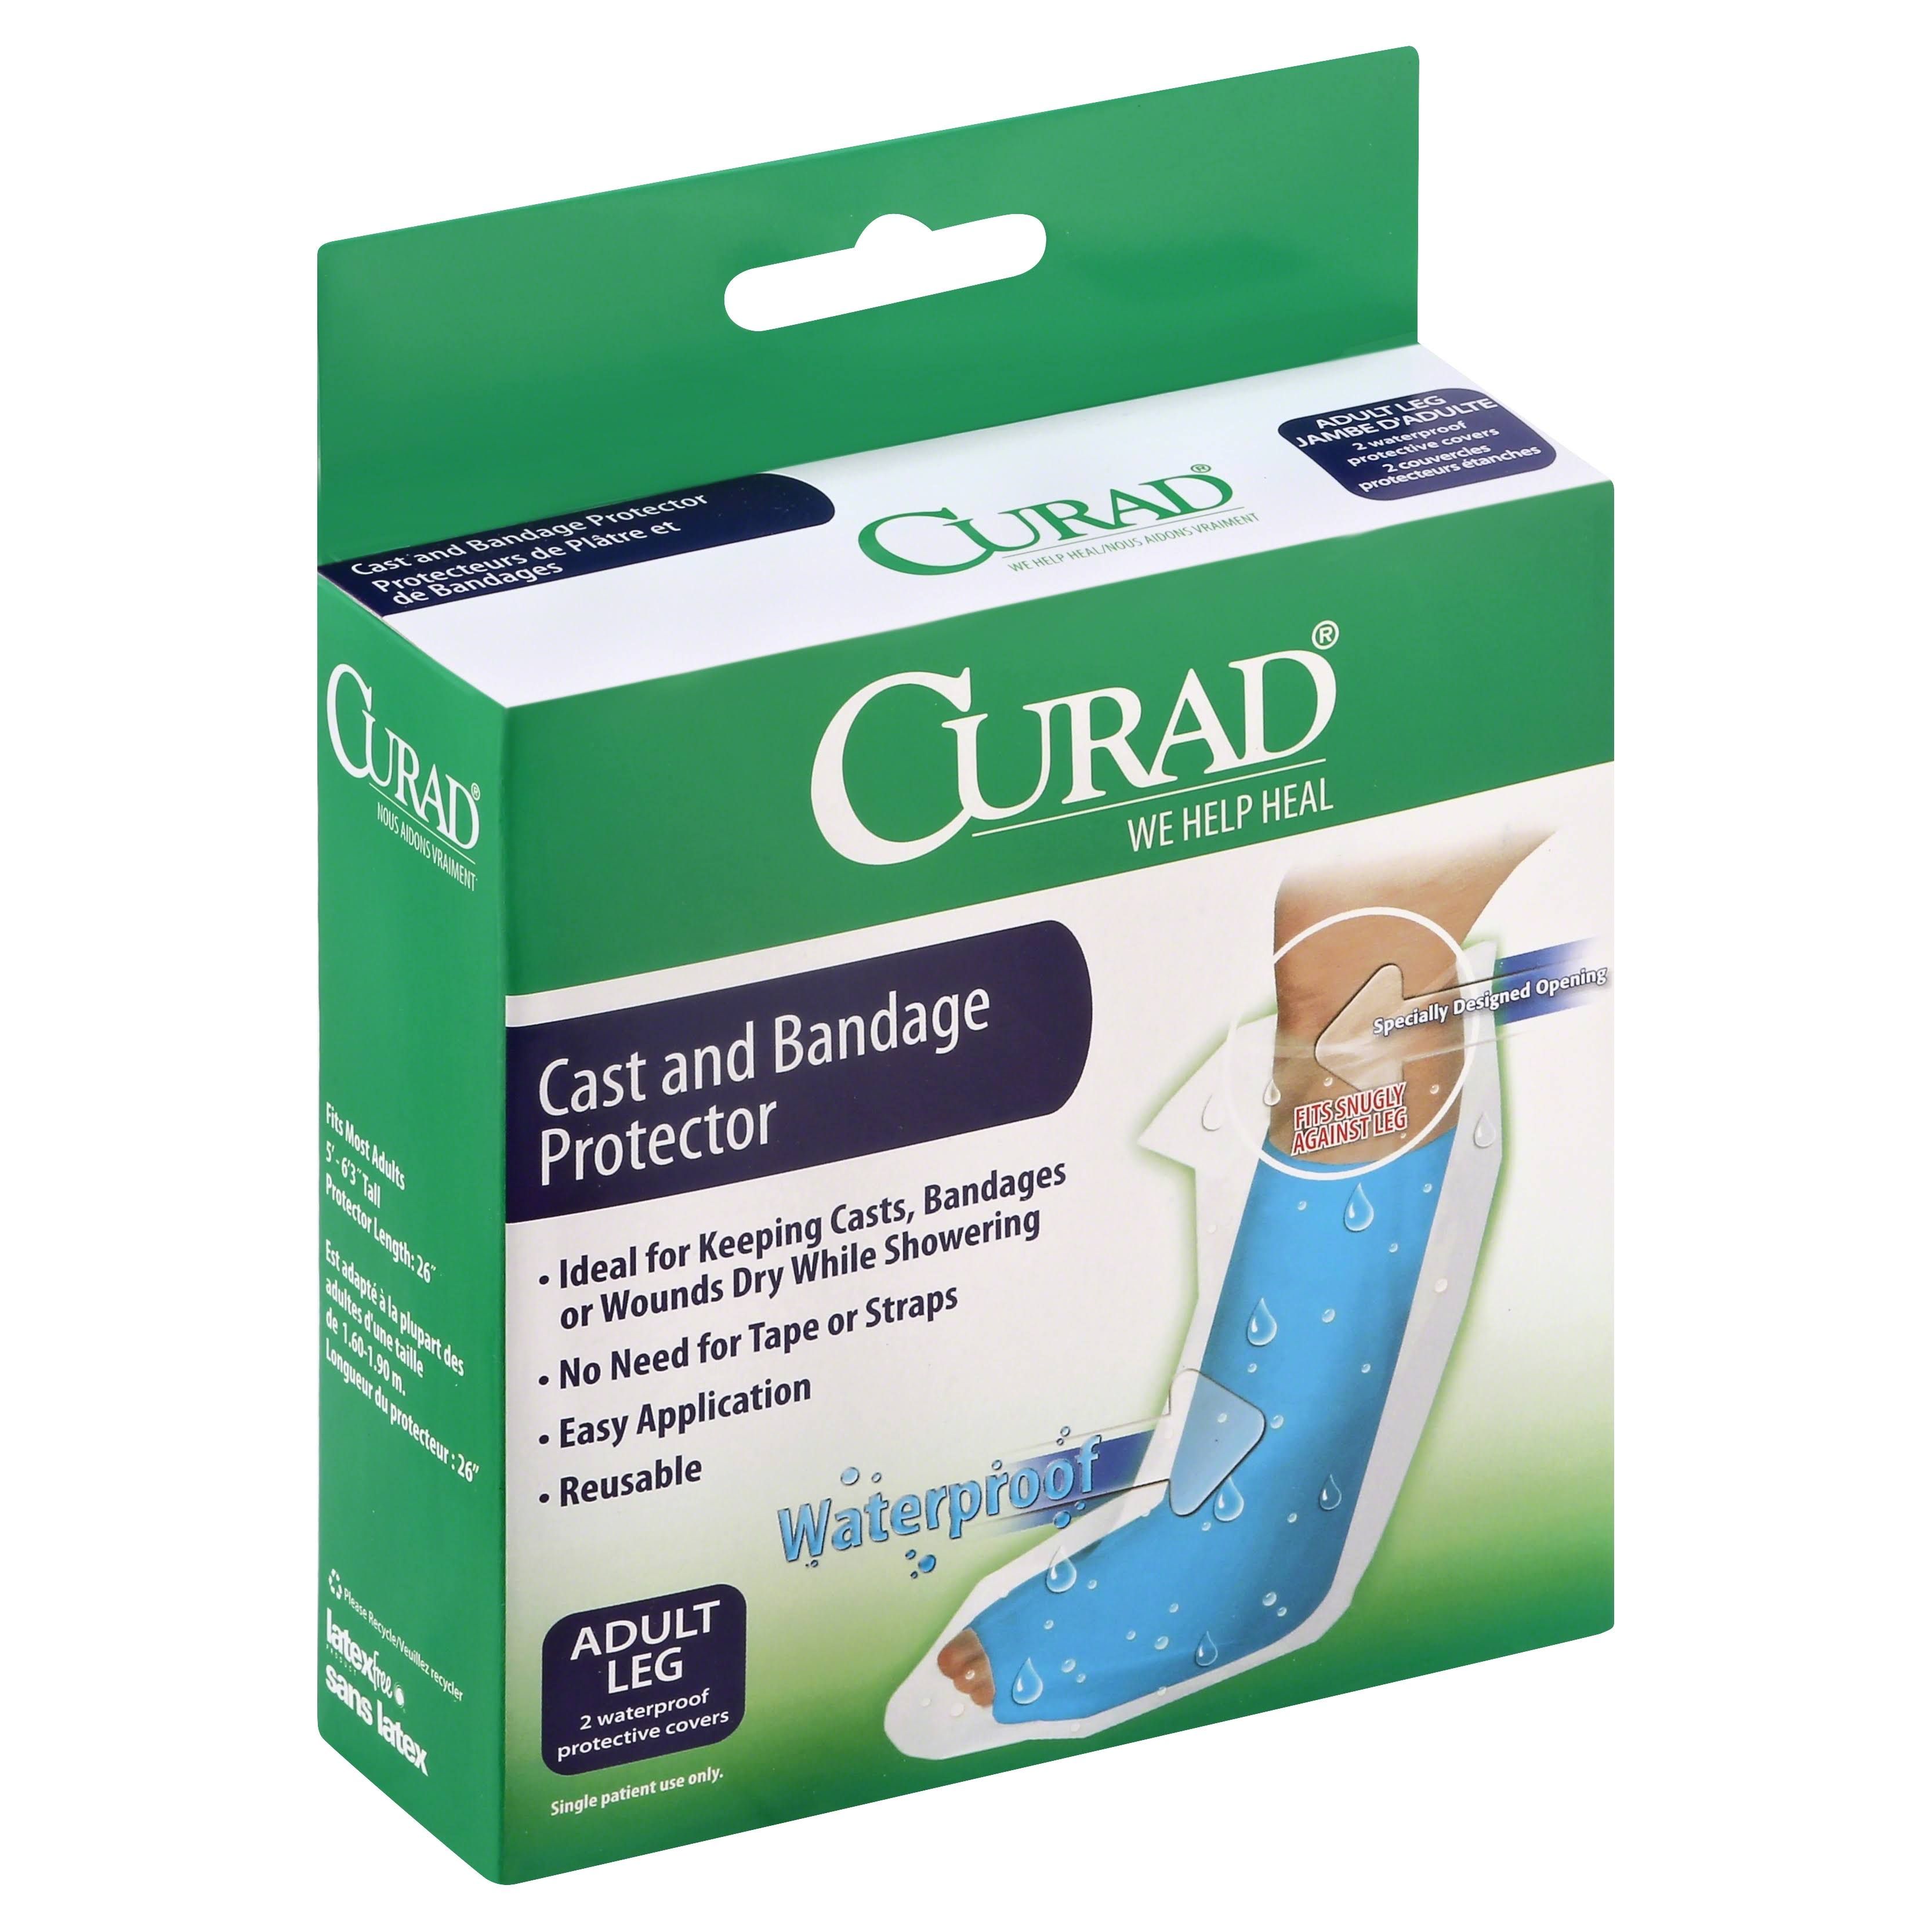 Curad Cast And Bandage Protector - Adult Leg